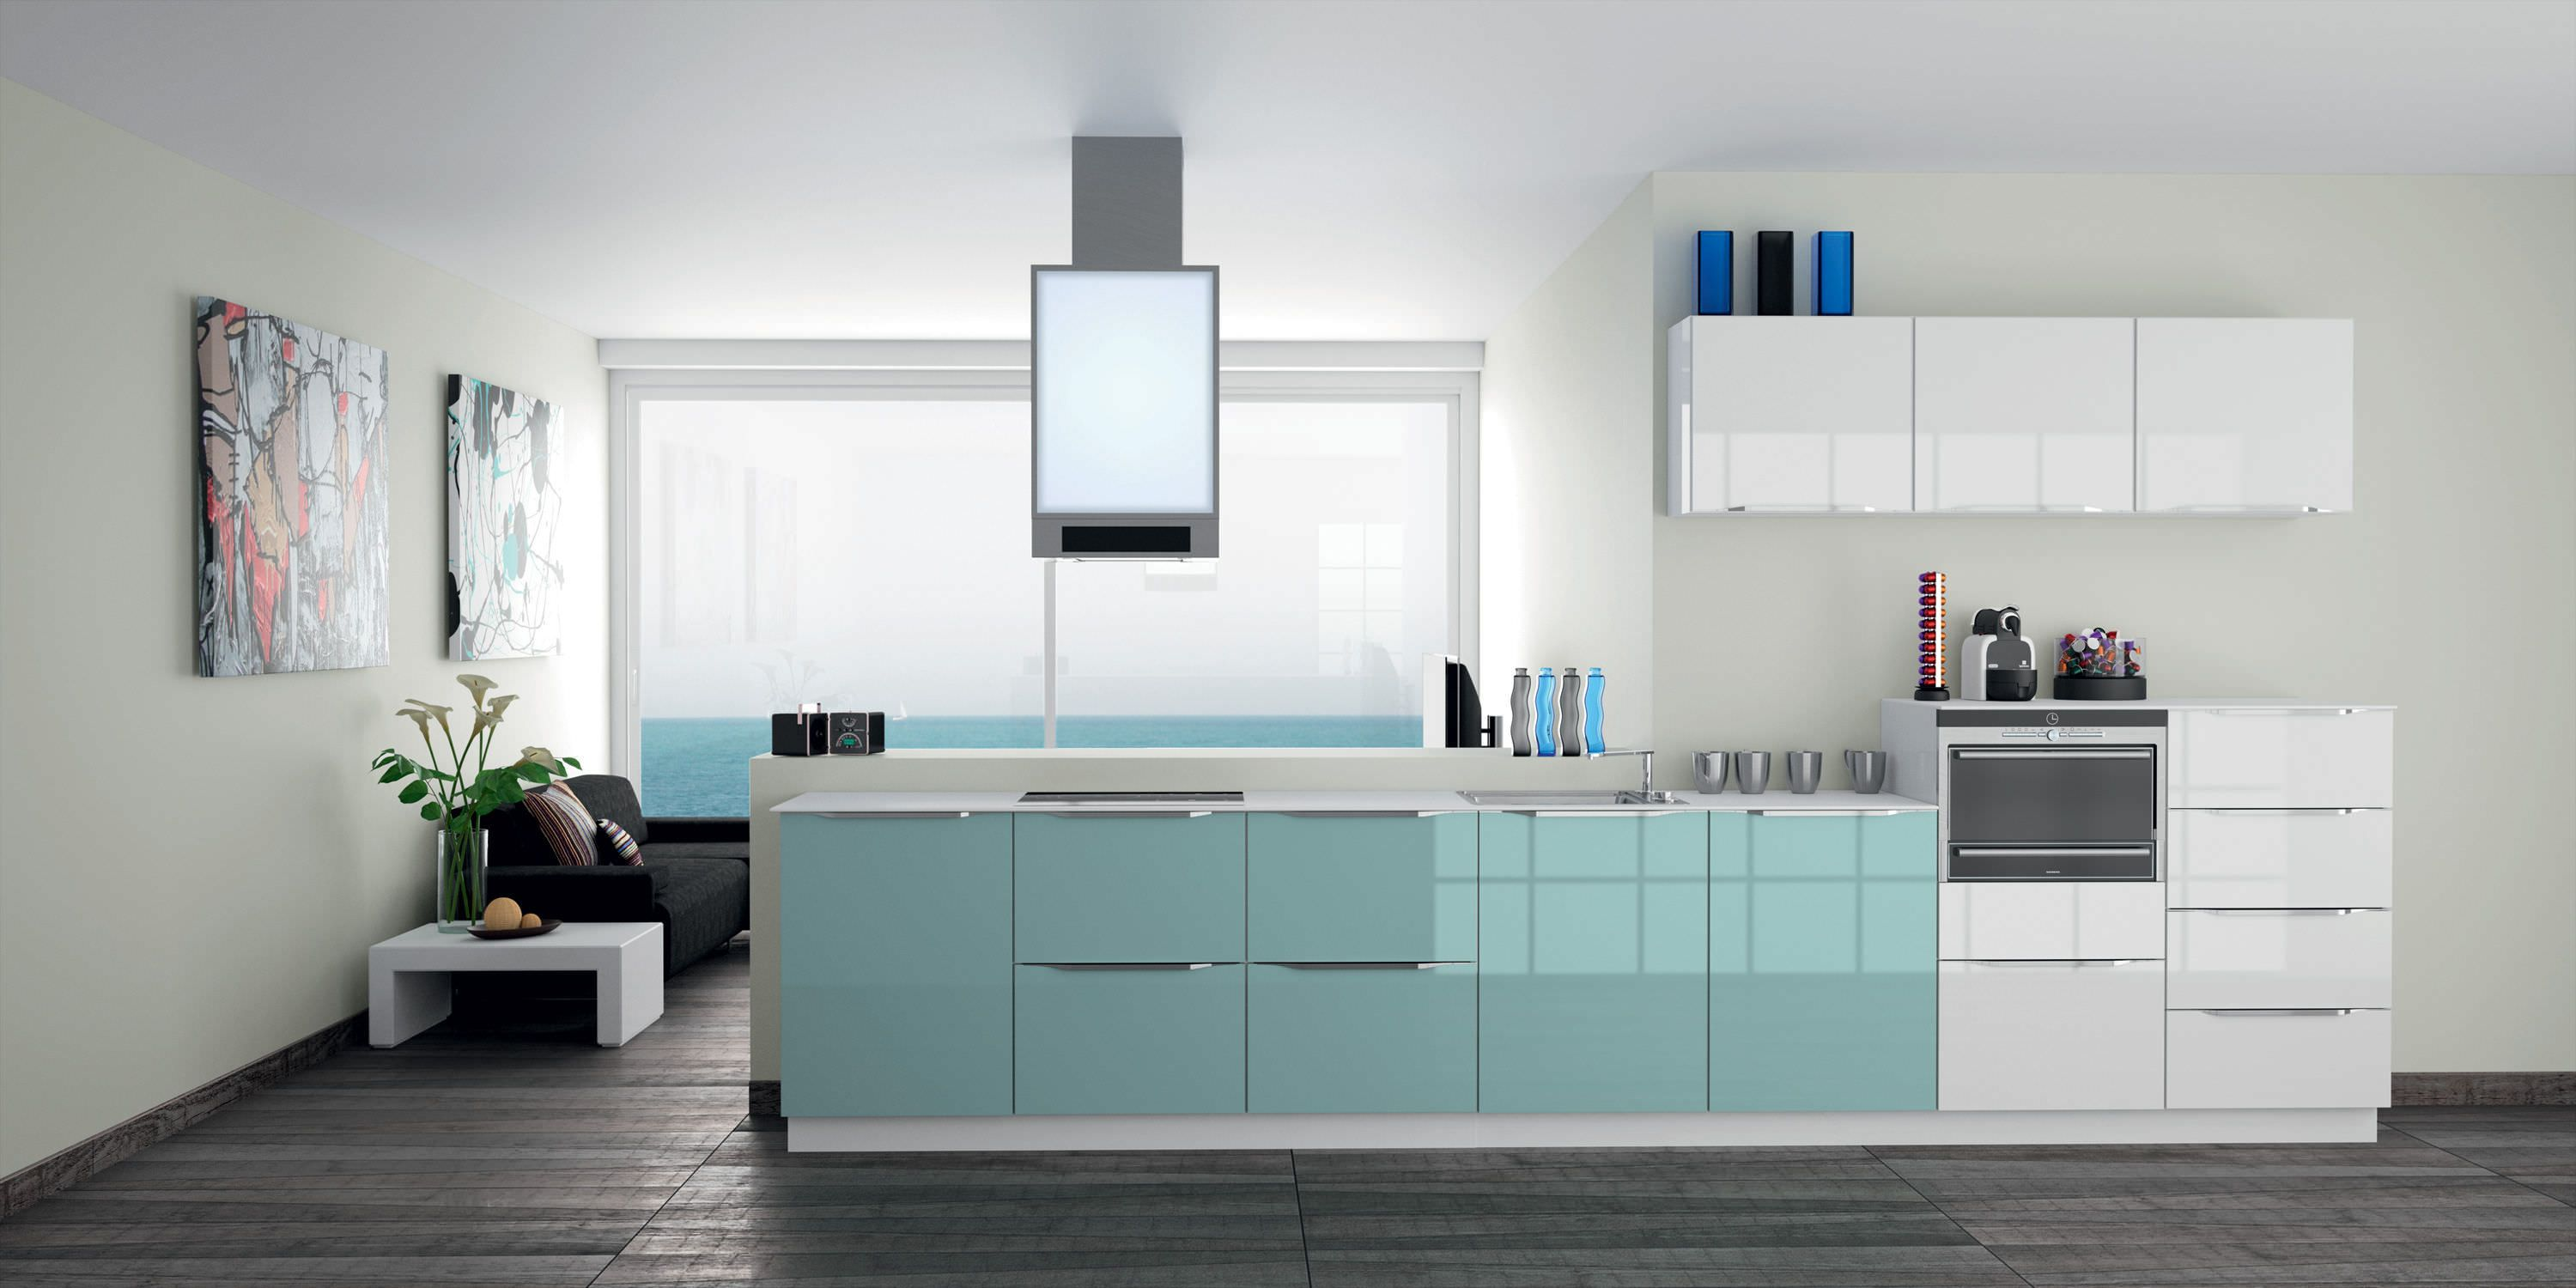 Kitchen Renovation Ideas Teal And White Cabinets For Kitchen Renovations High Gloss Kitchen Cabinets White Gloss Kitchen Kitchen Design